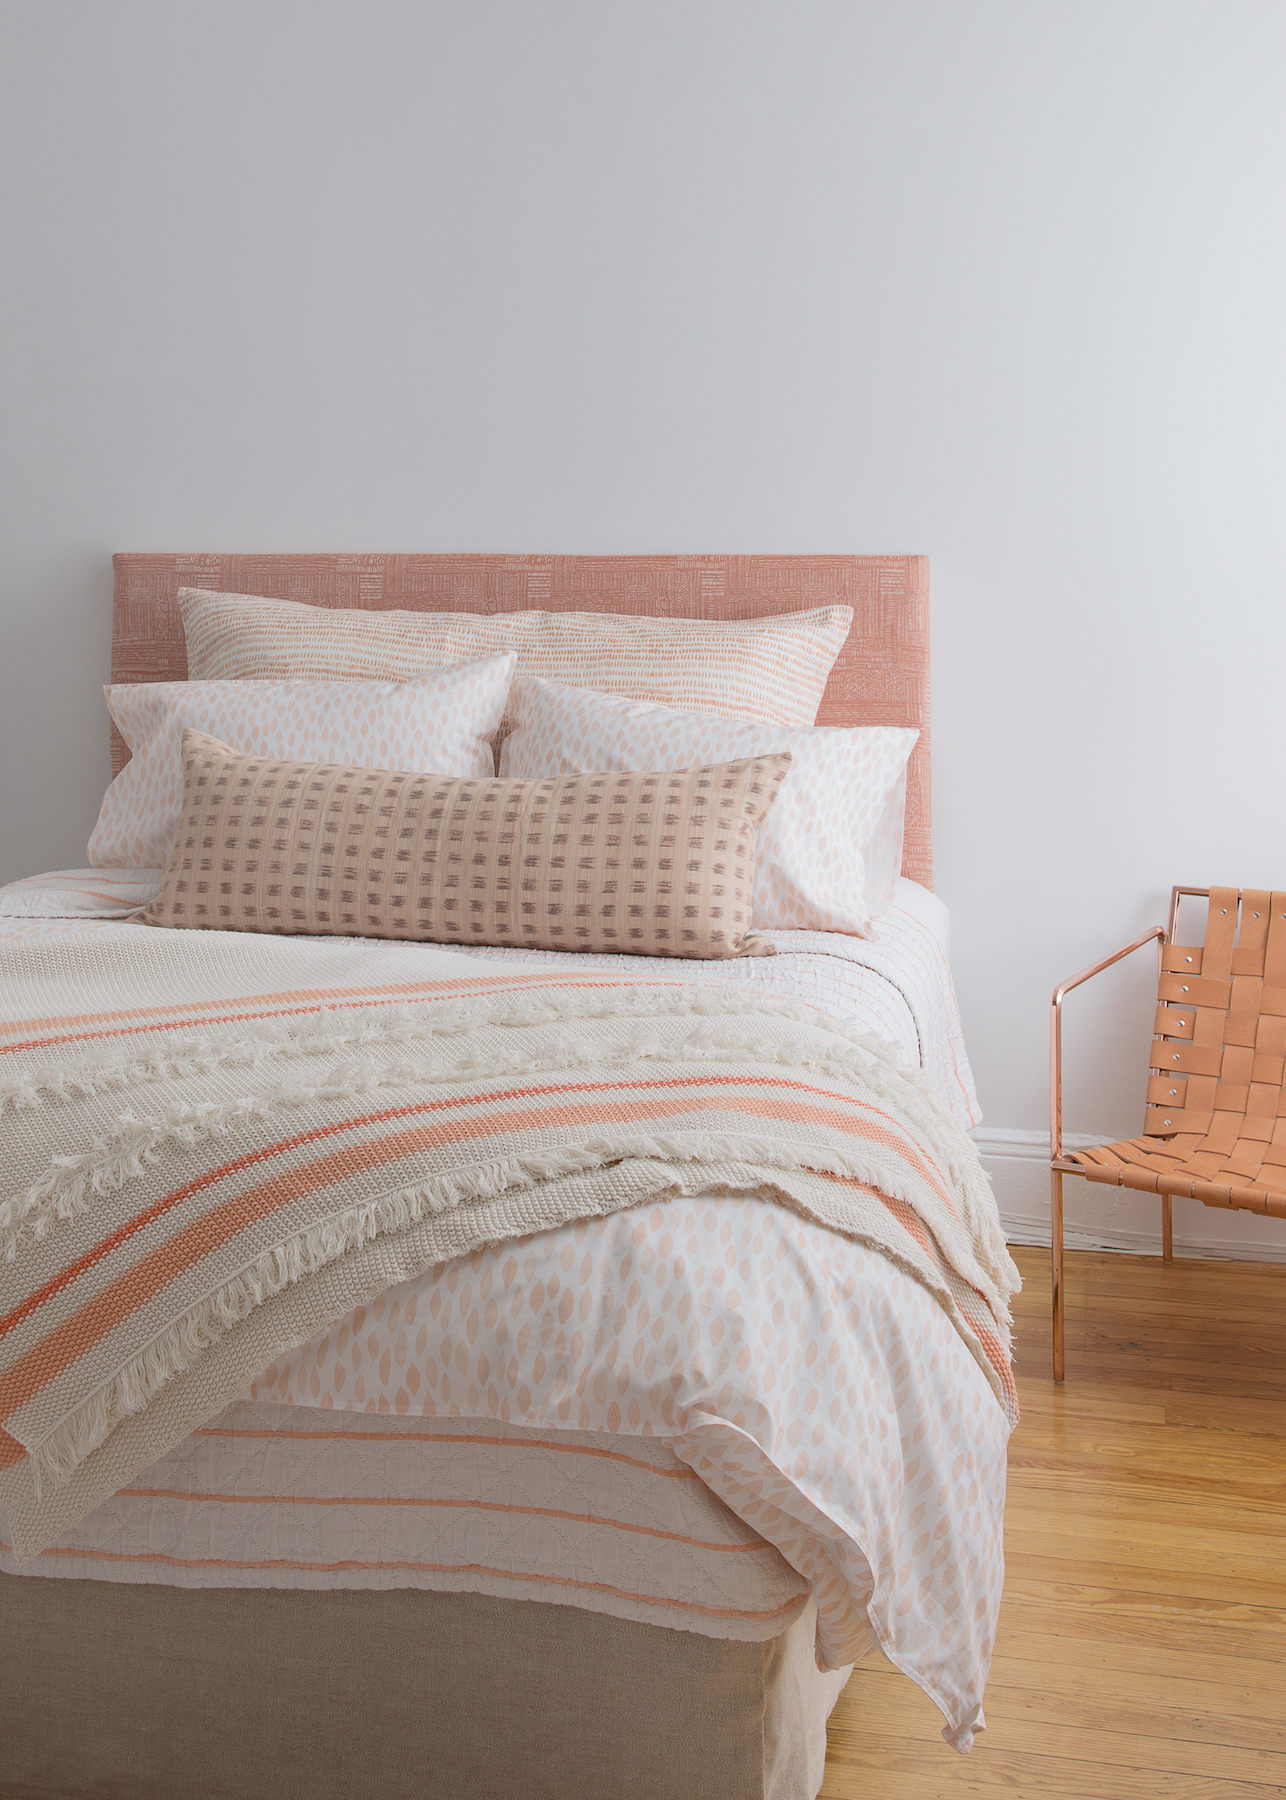 Bed with Rebecca Atwood coral bedding collection